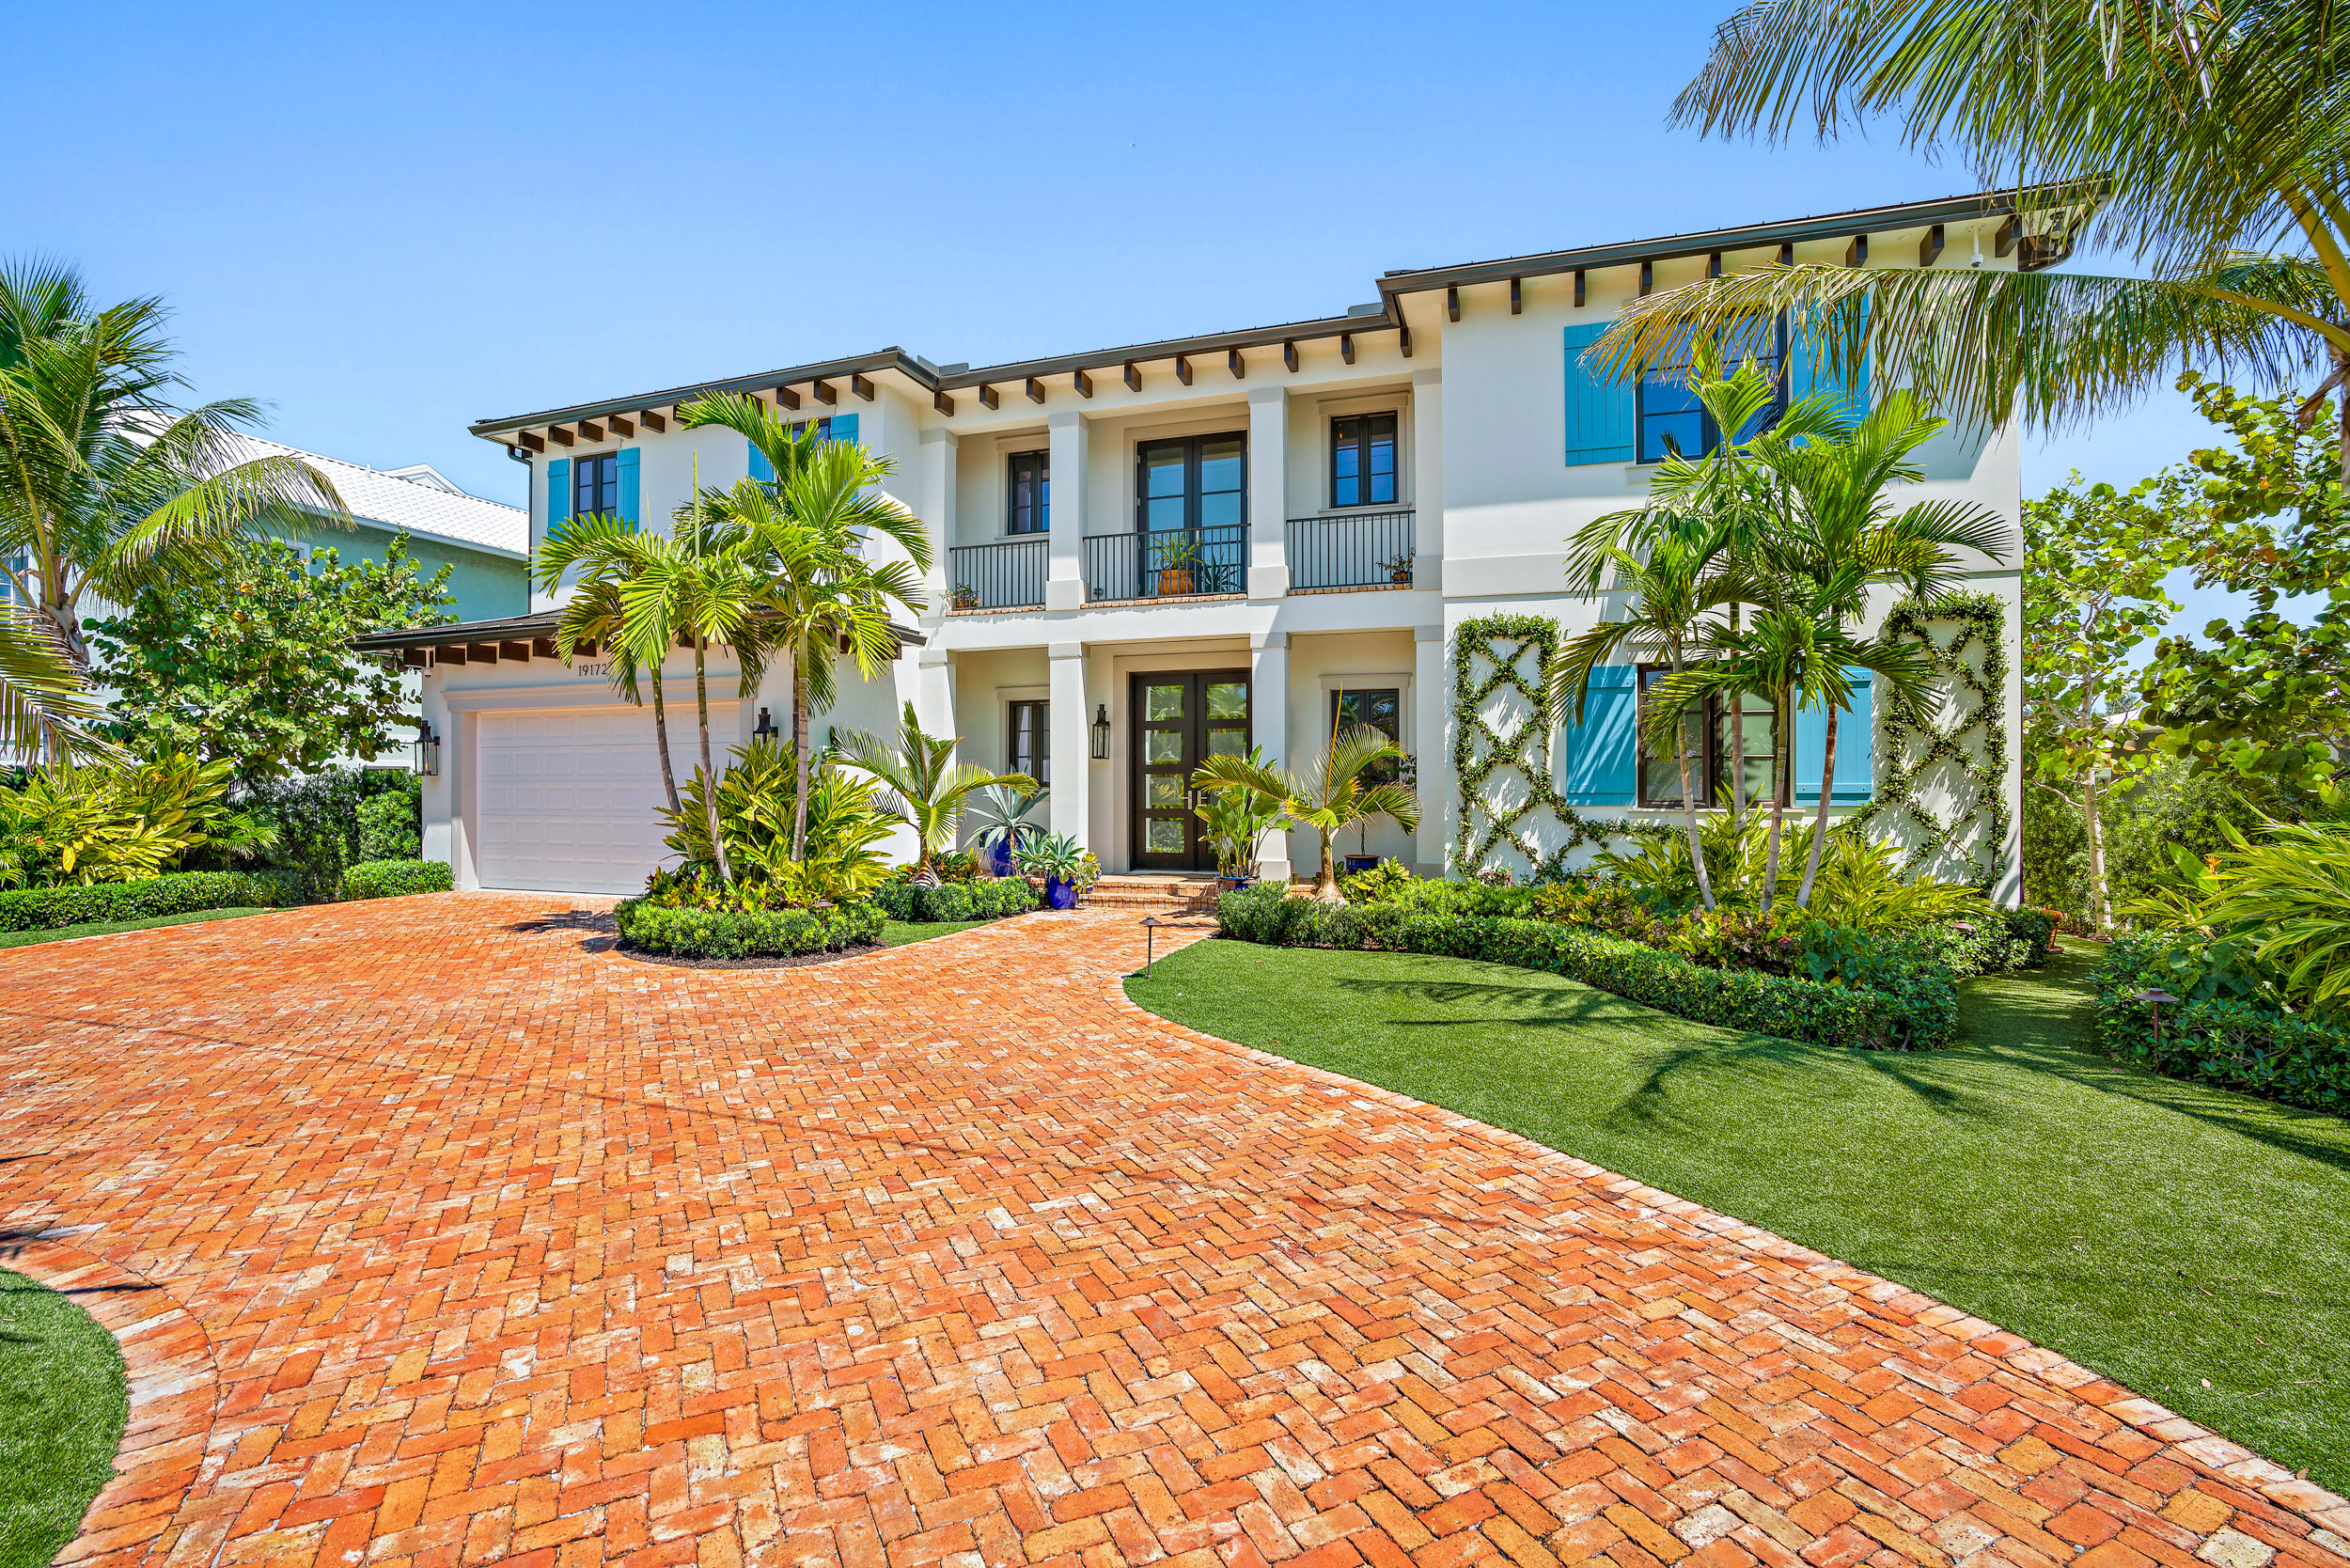 Real Homes of Jupiter: Edition Five -